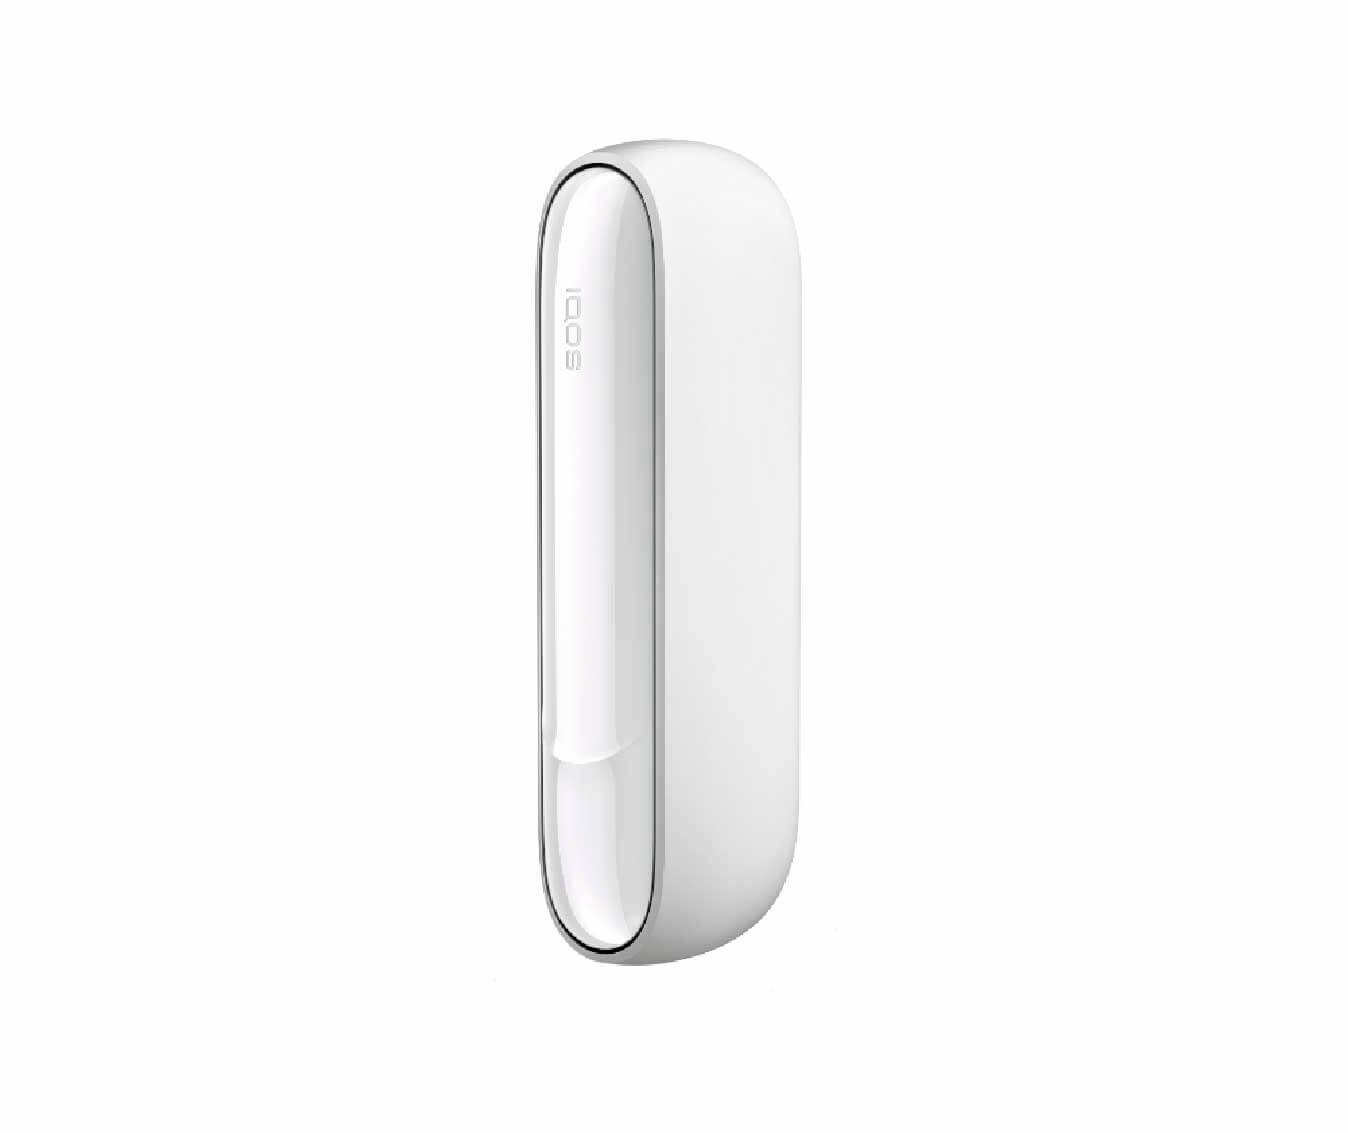 IQOS 3 Pocket Charger Warm White